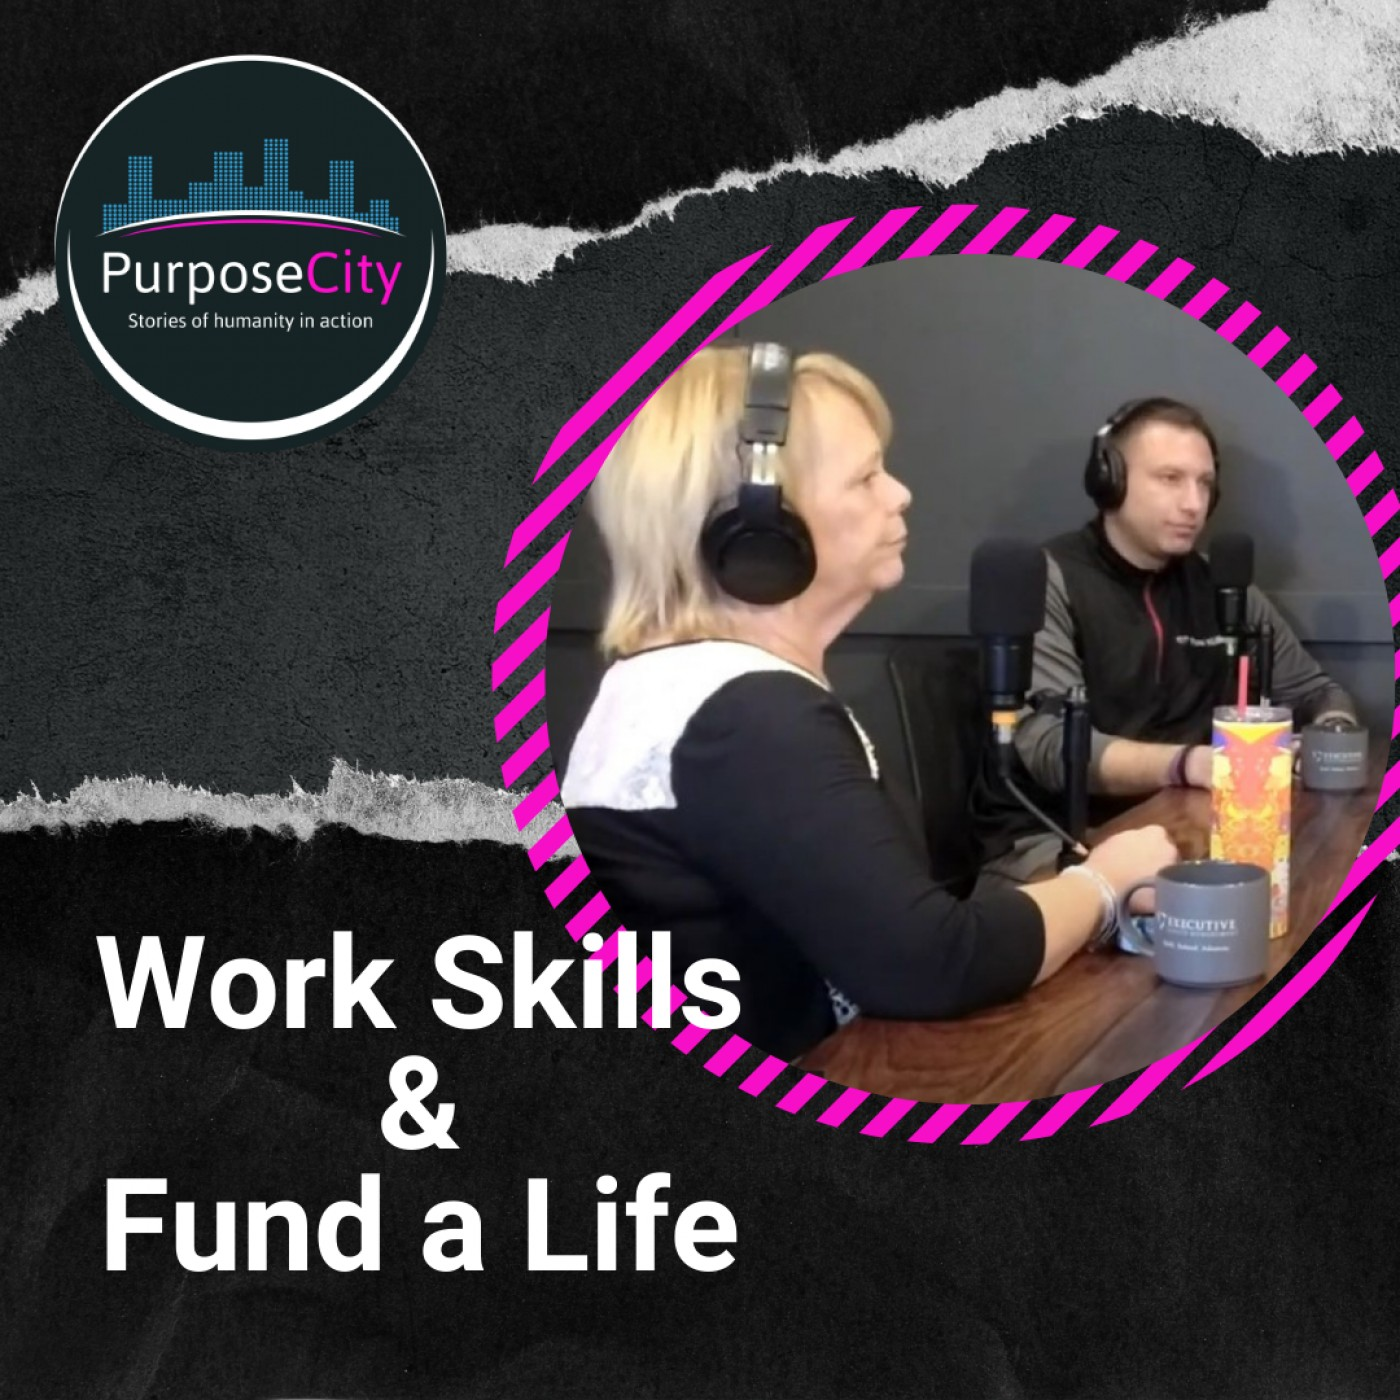 02: Saving and Enhancing Lives in the Community